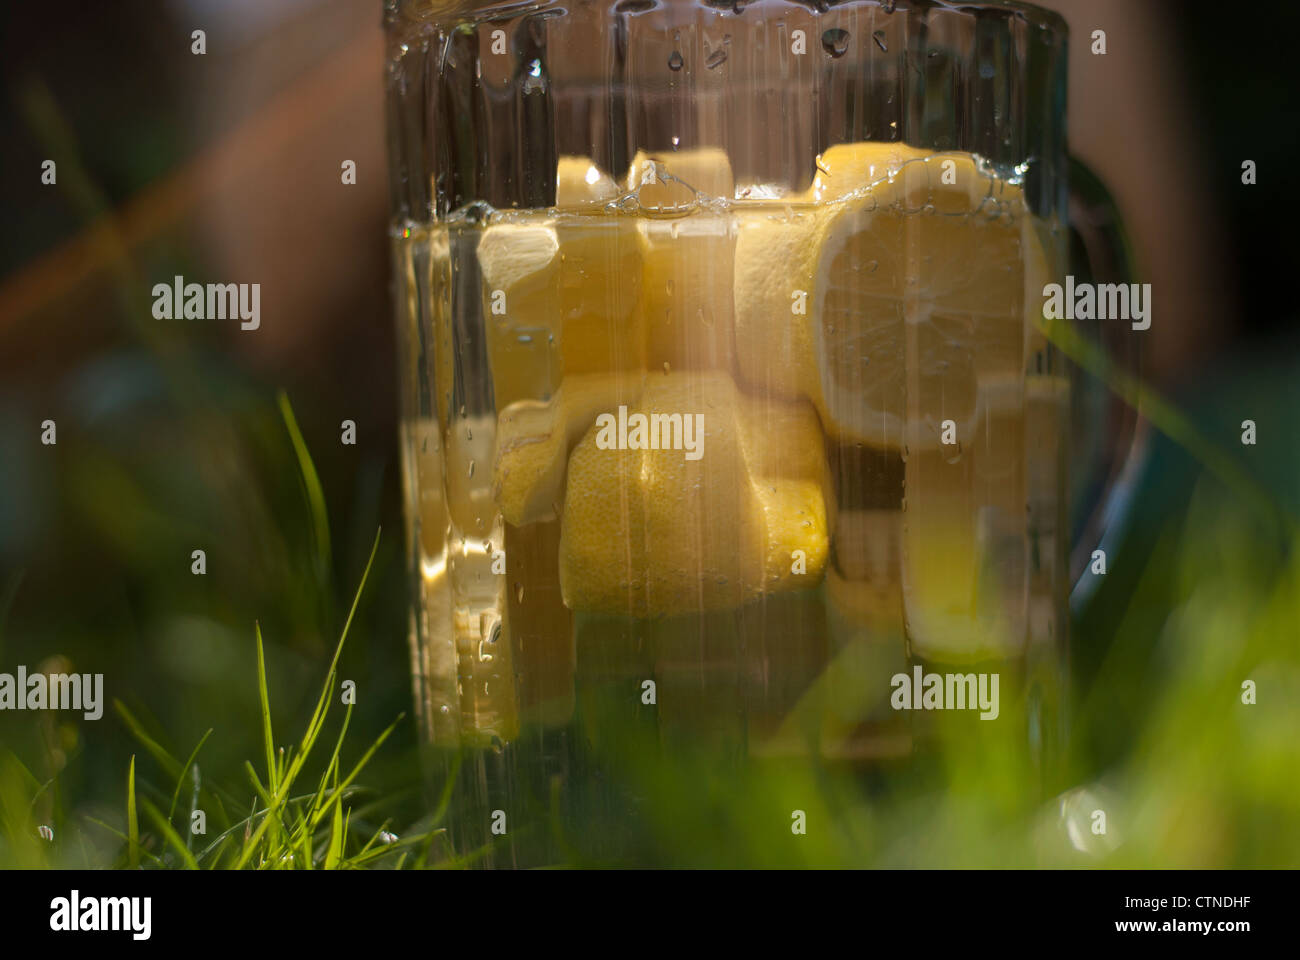 A Large glass jug of lemons and water, on the grass. - Stock Image